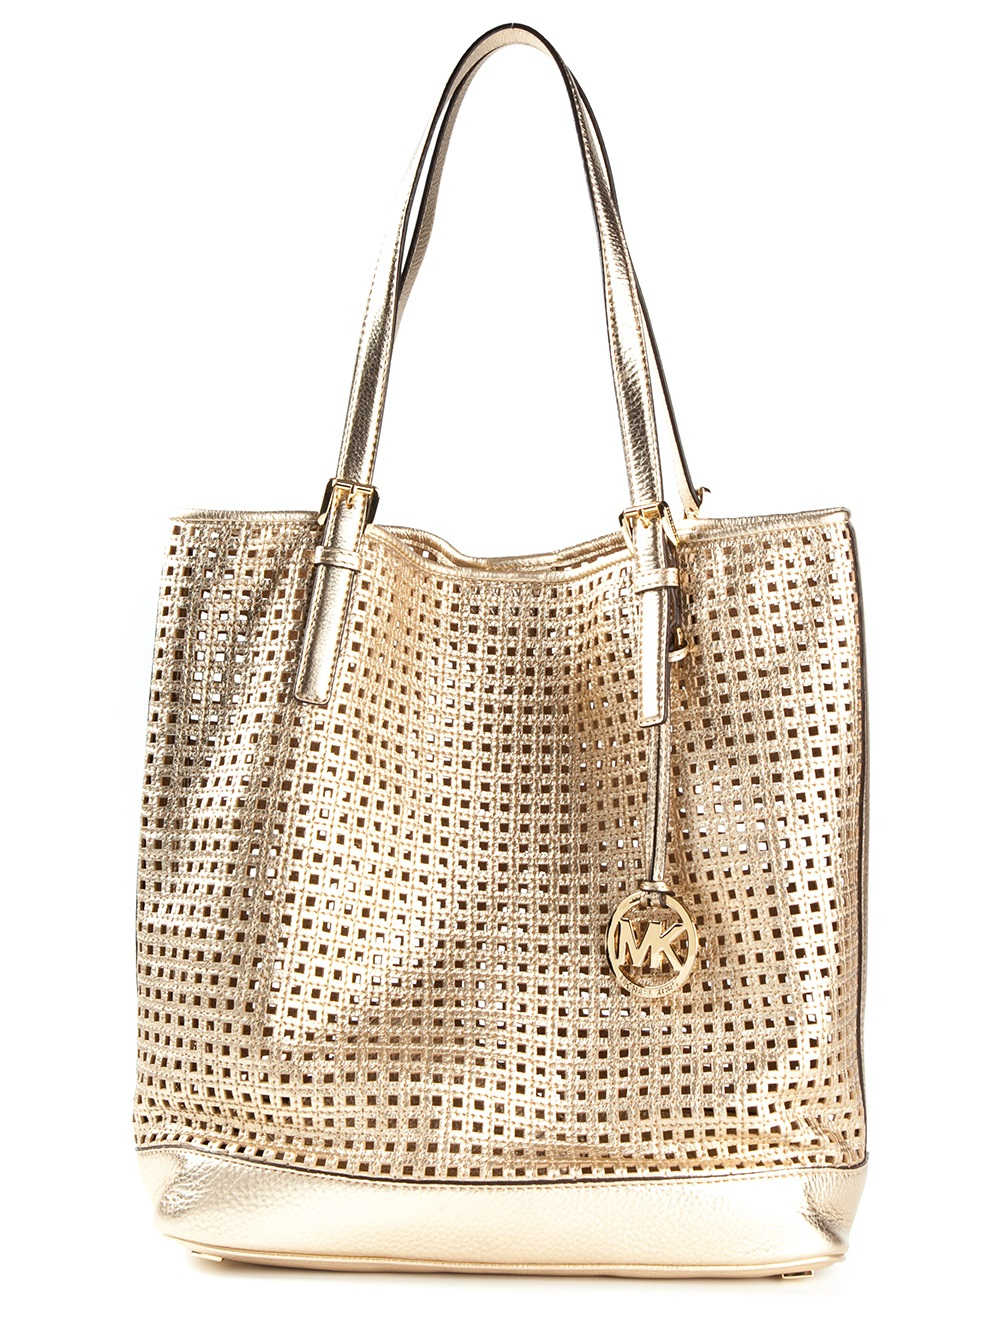 michael michael kors perforated shopper tote in gold. Black Bedroom Furniture Sets. Home Design Ideas